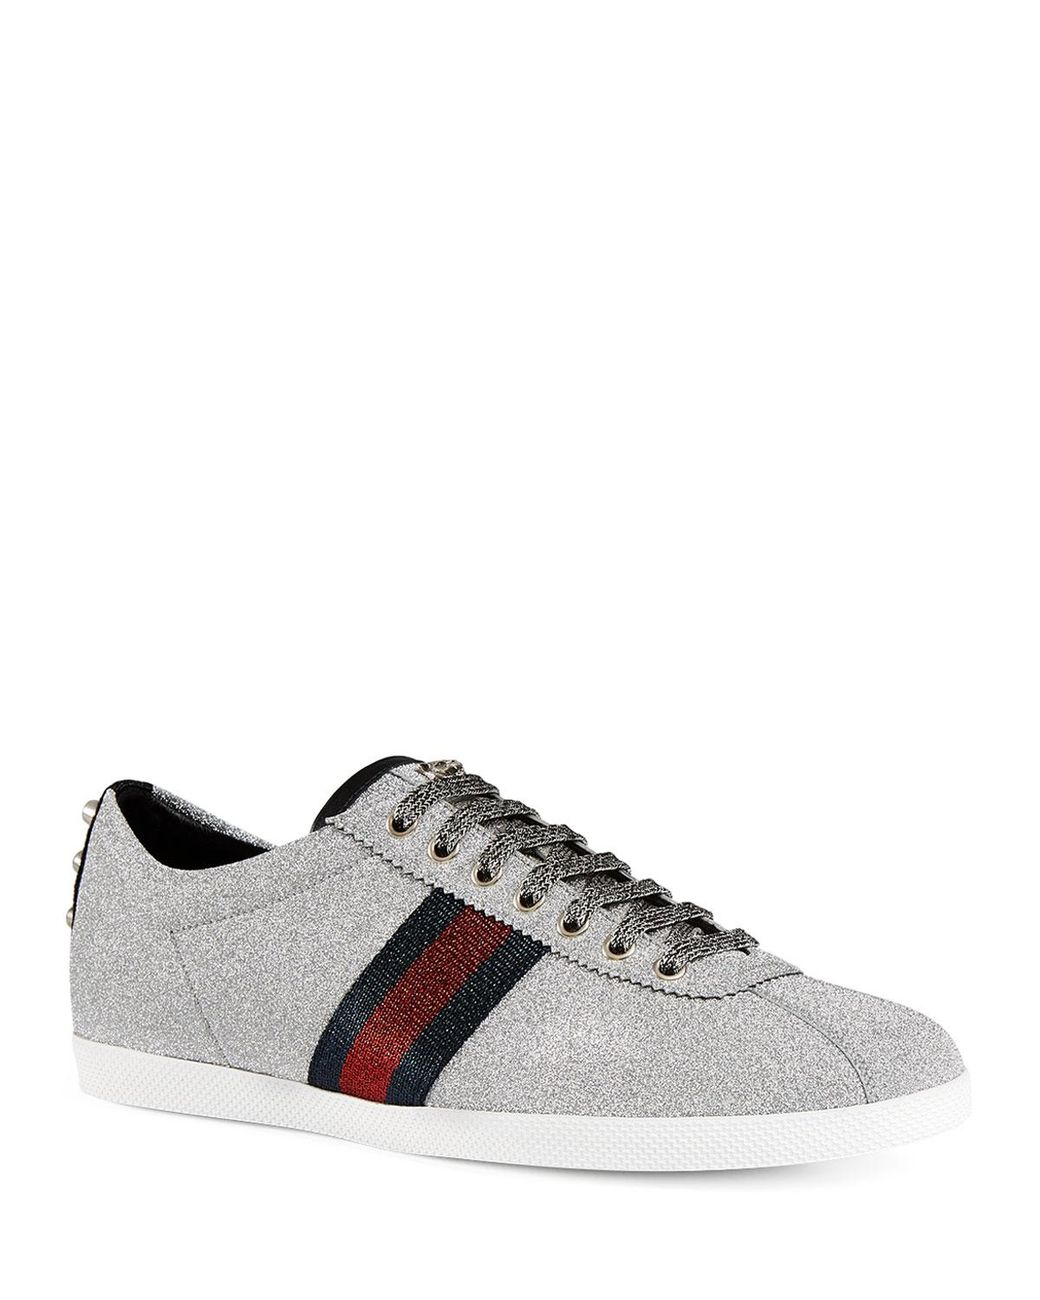 5779380a623 Lyst - Gucci Men s Bambi Web Low-top Sneakers With Stud Detail for Men